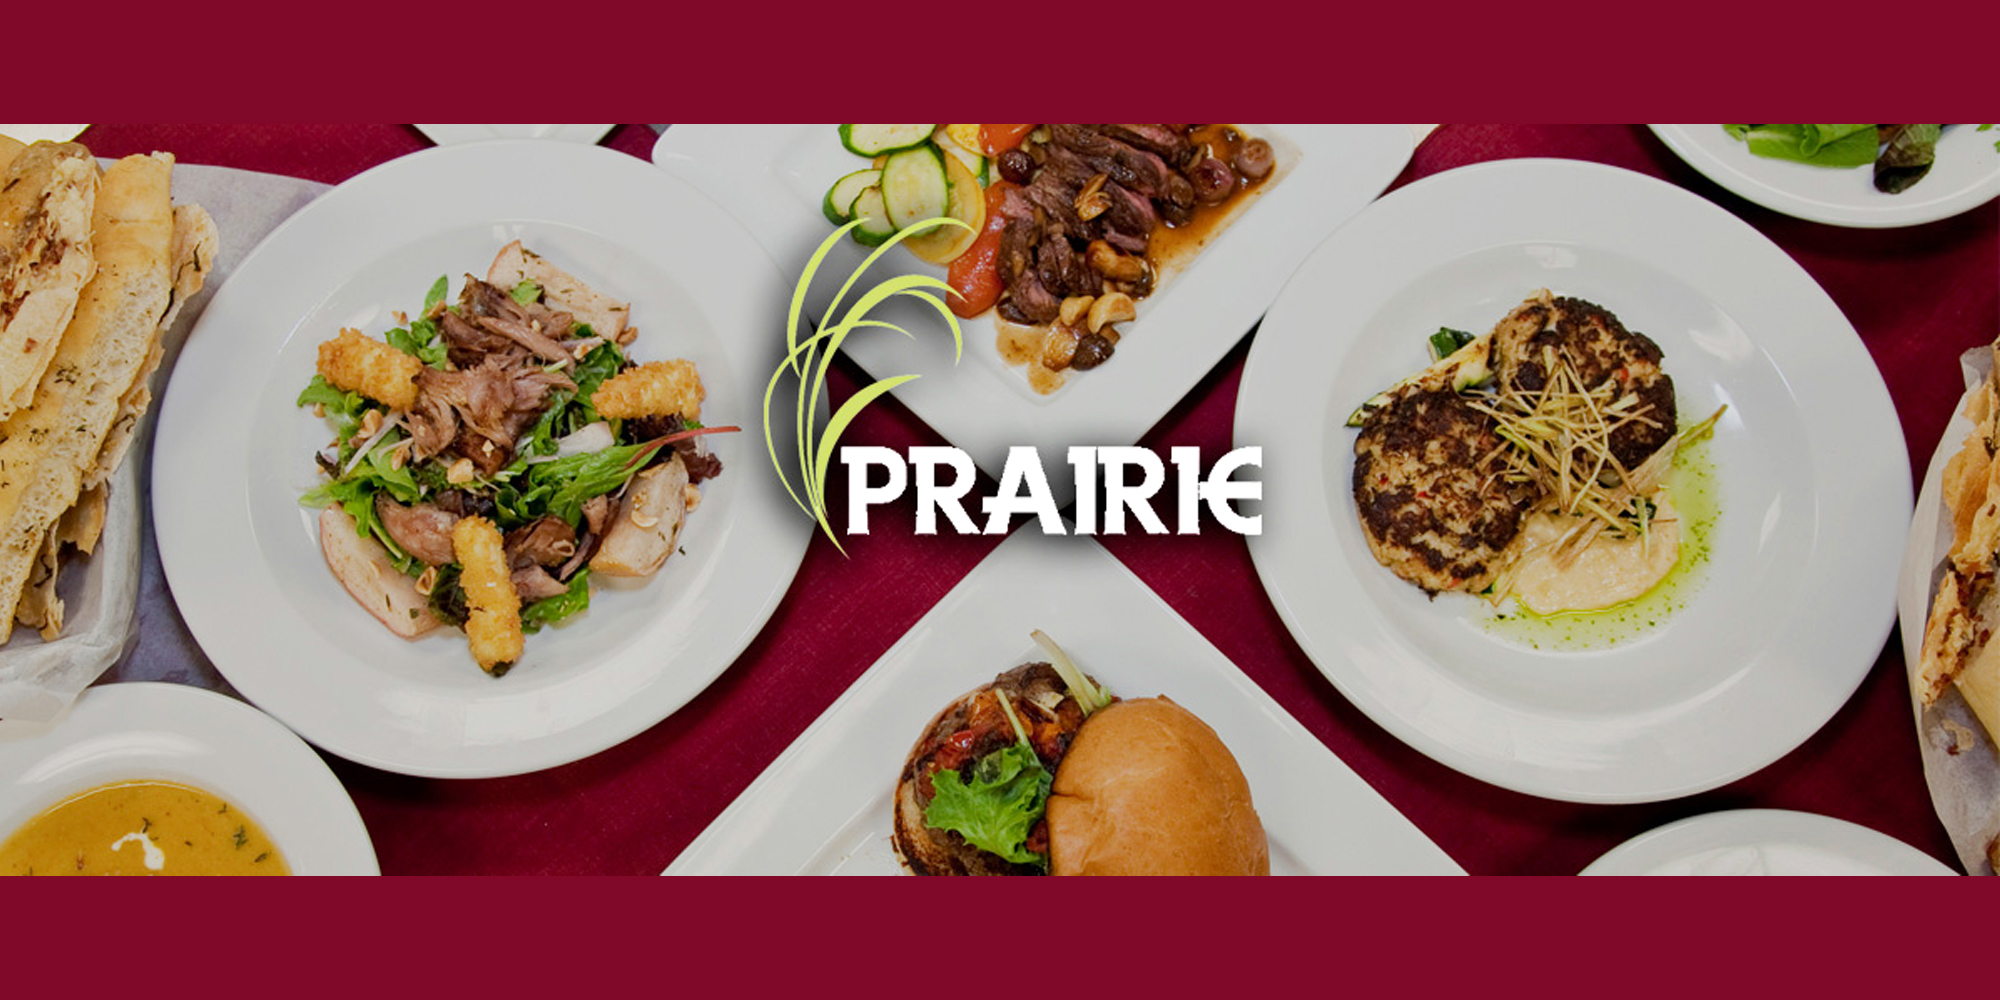 Prairie Restaurant at the College of Lake County Culinary Festival